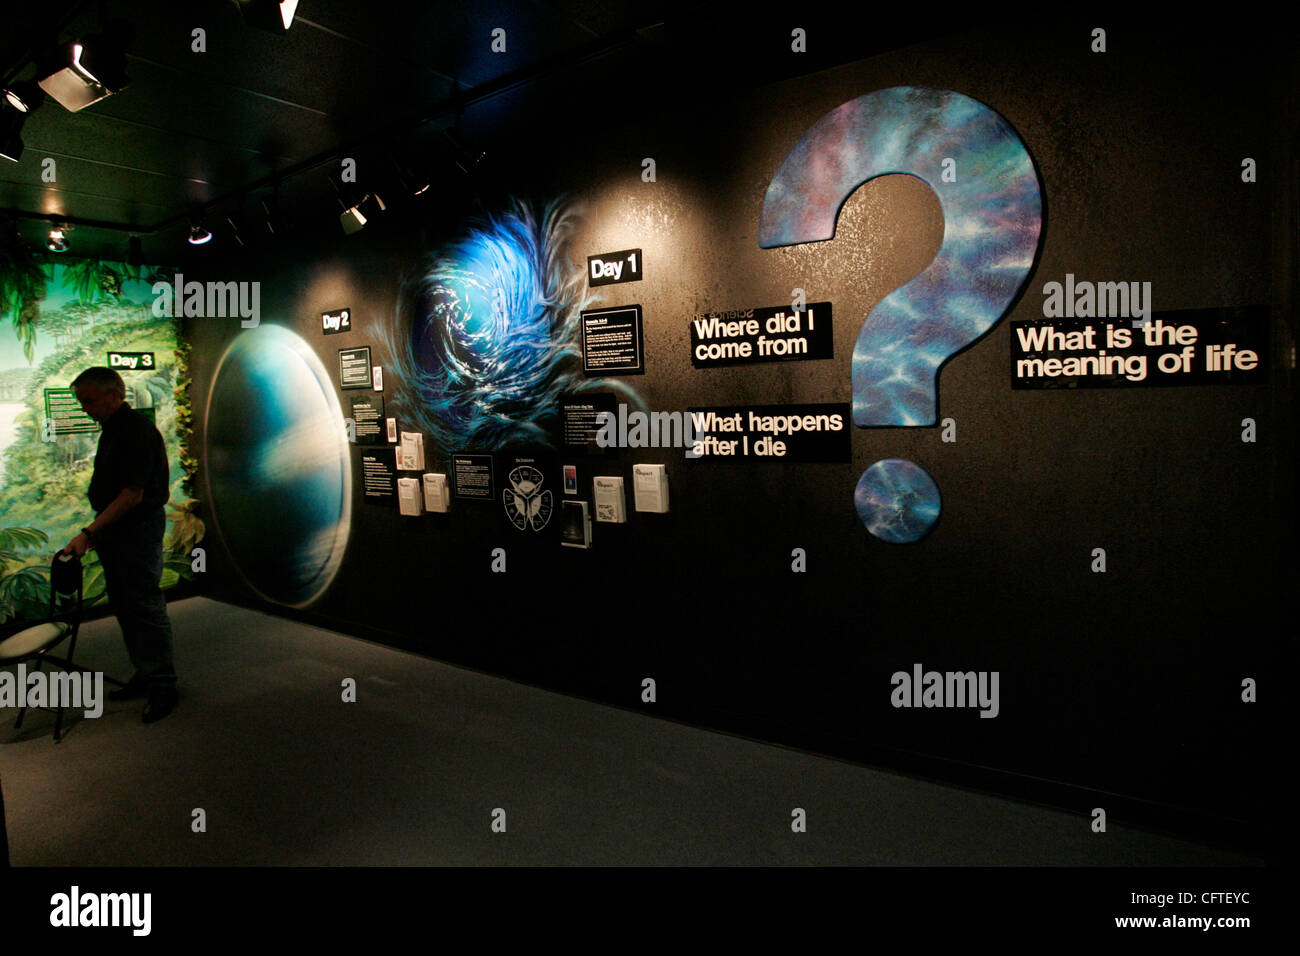 January 11 2007 Santee The Museum Of Creation And Earth History In Santee Is The Only Museum In The City Of Santee This Is The Beginning Room Of The